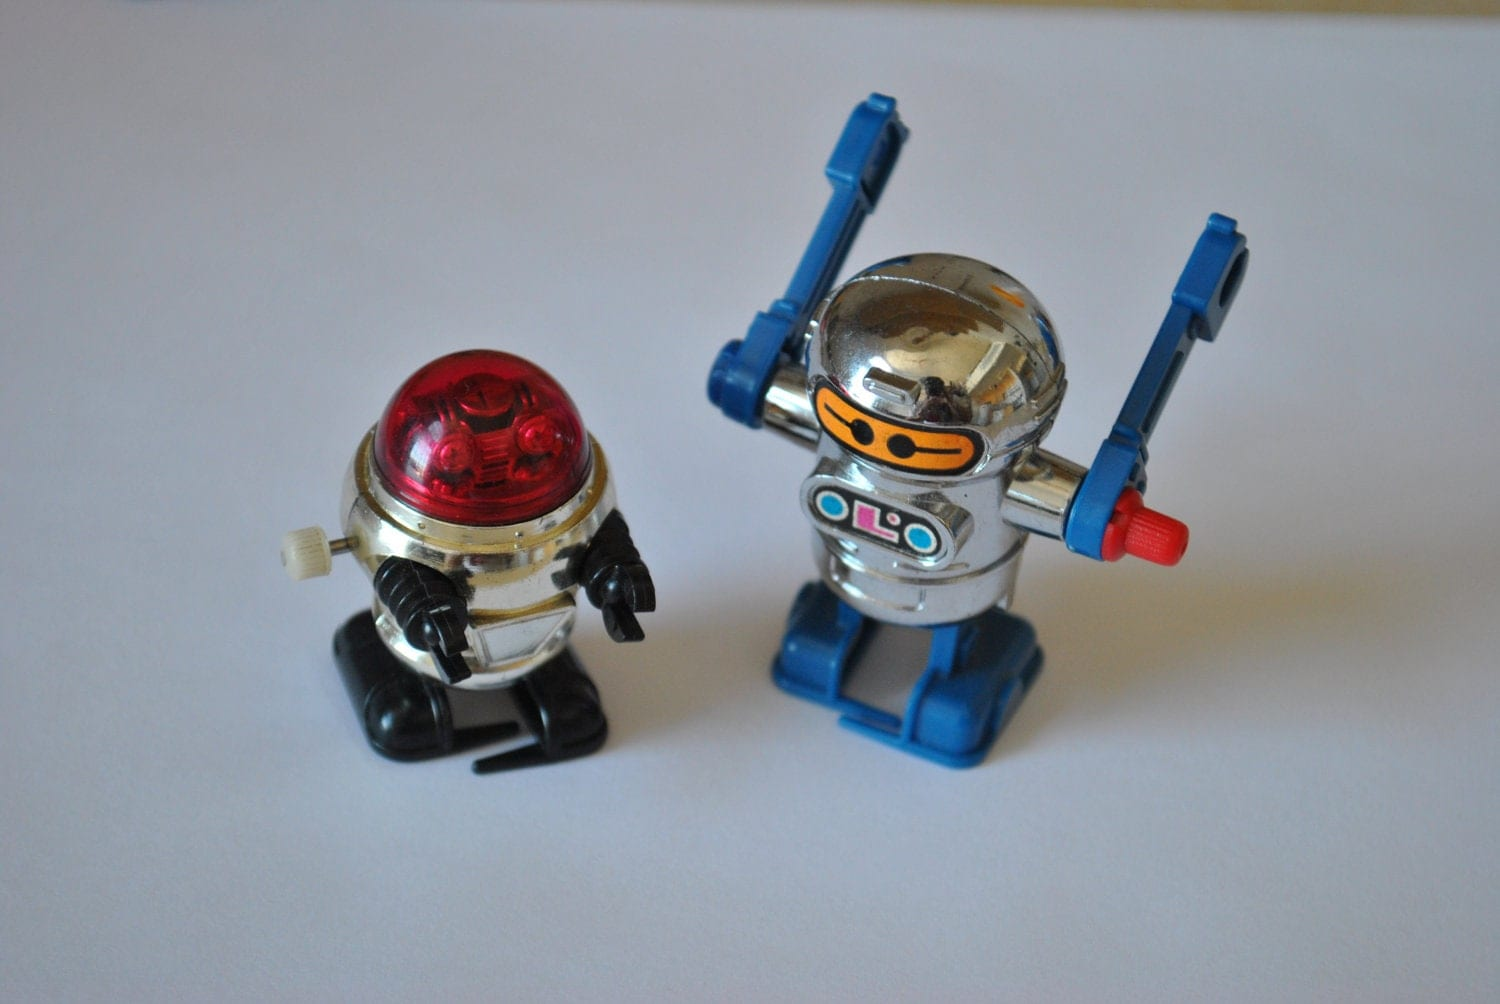 Pair Of Vintage 1970s Tomy Wind Up Robot Toys